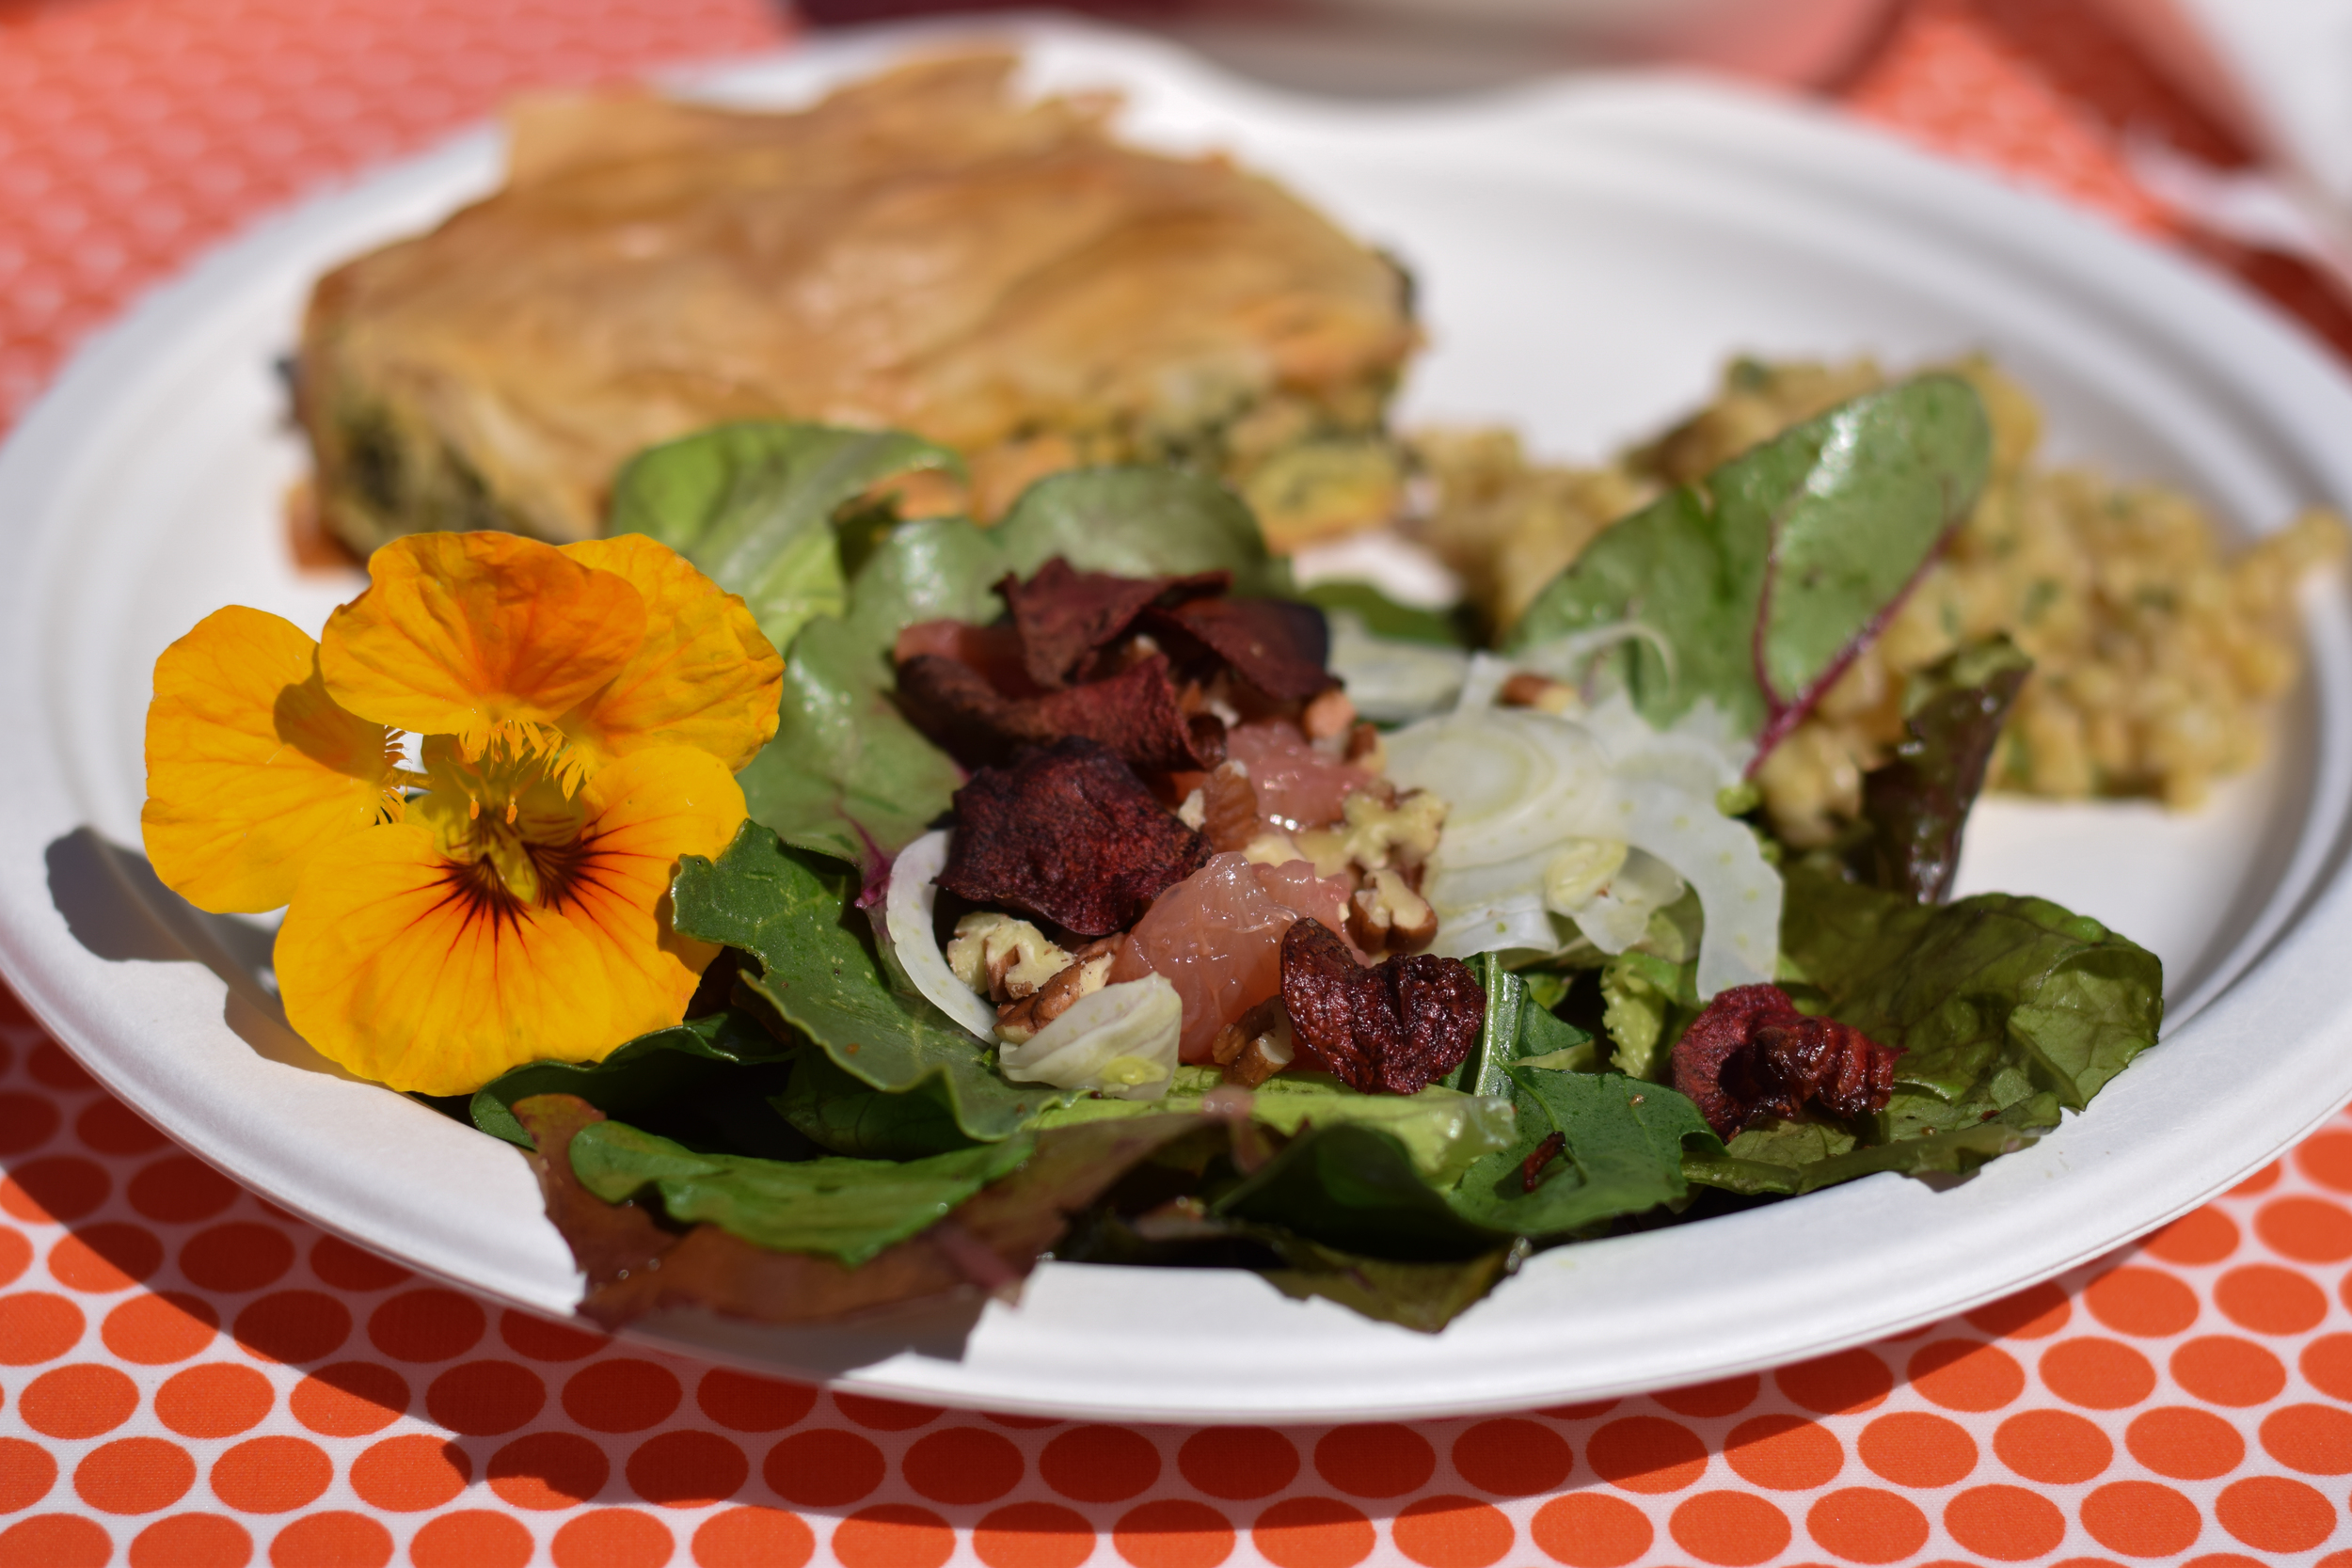 A farm-to-table meal prepared by the Ajo Center for Sustainable Agriculture, prepared with produce grown on-site at the Conference Center